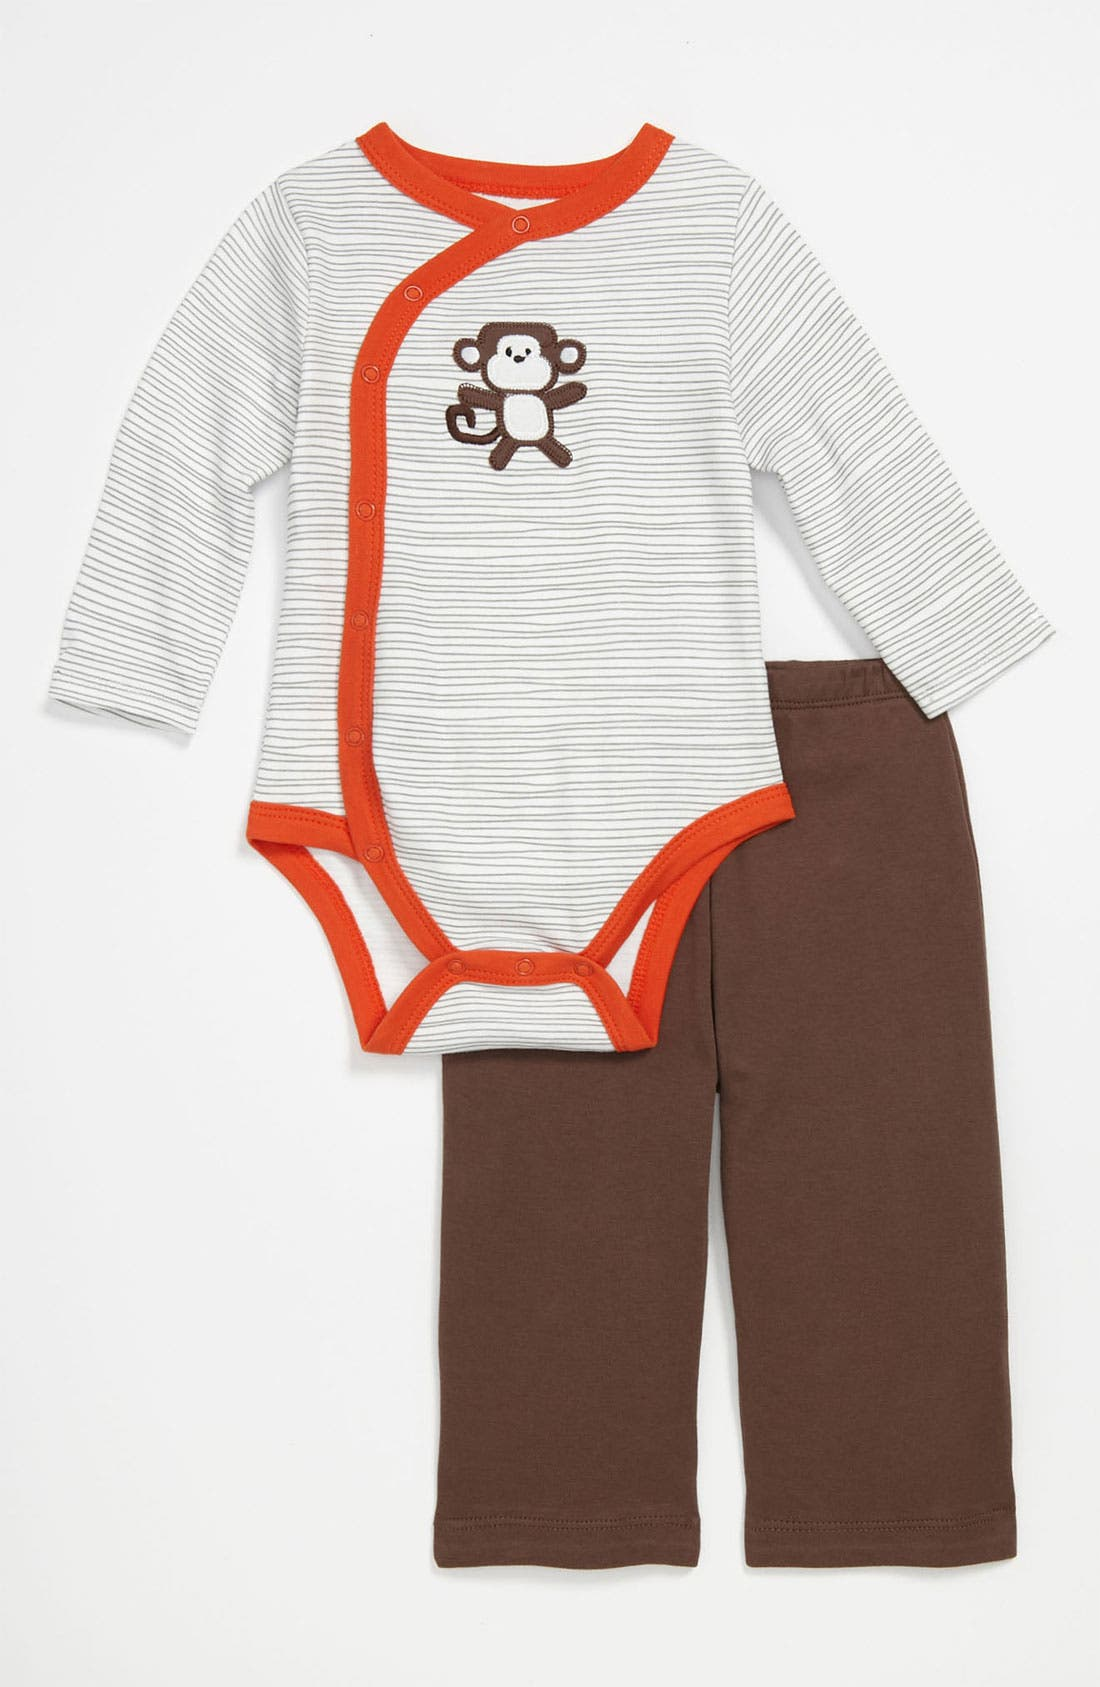 Alternate Image 1 Selected - Offspring Bodysuit & Pants (Infant)